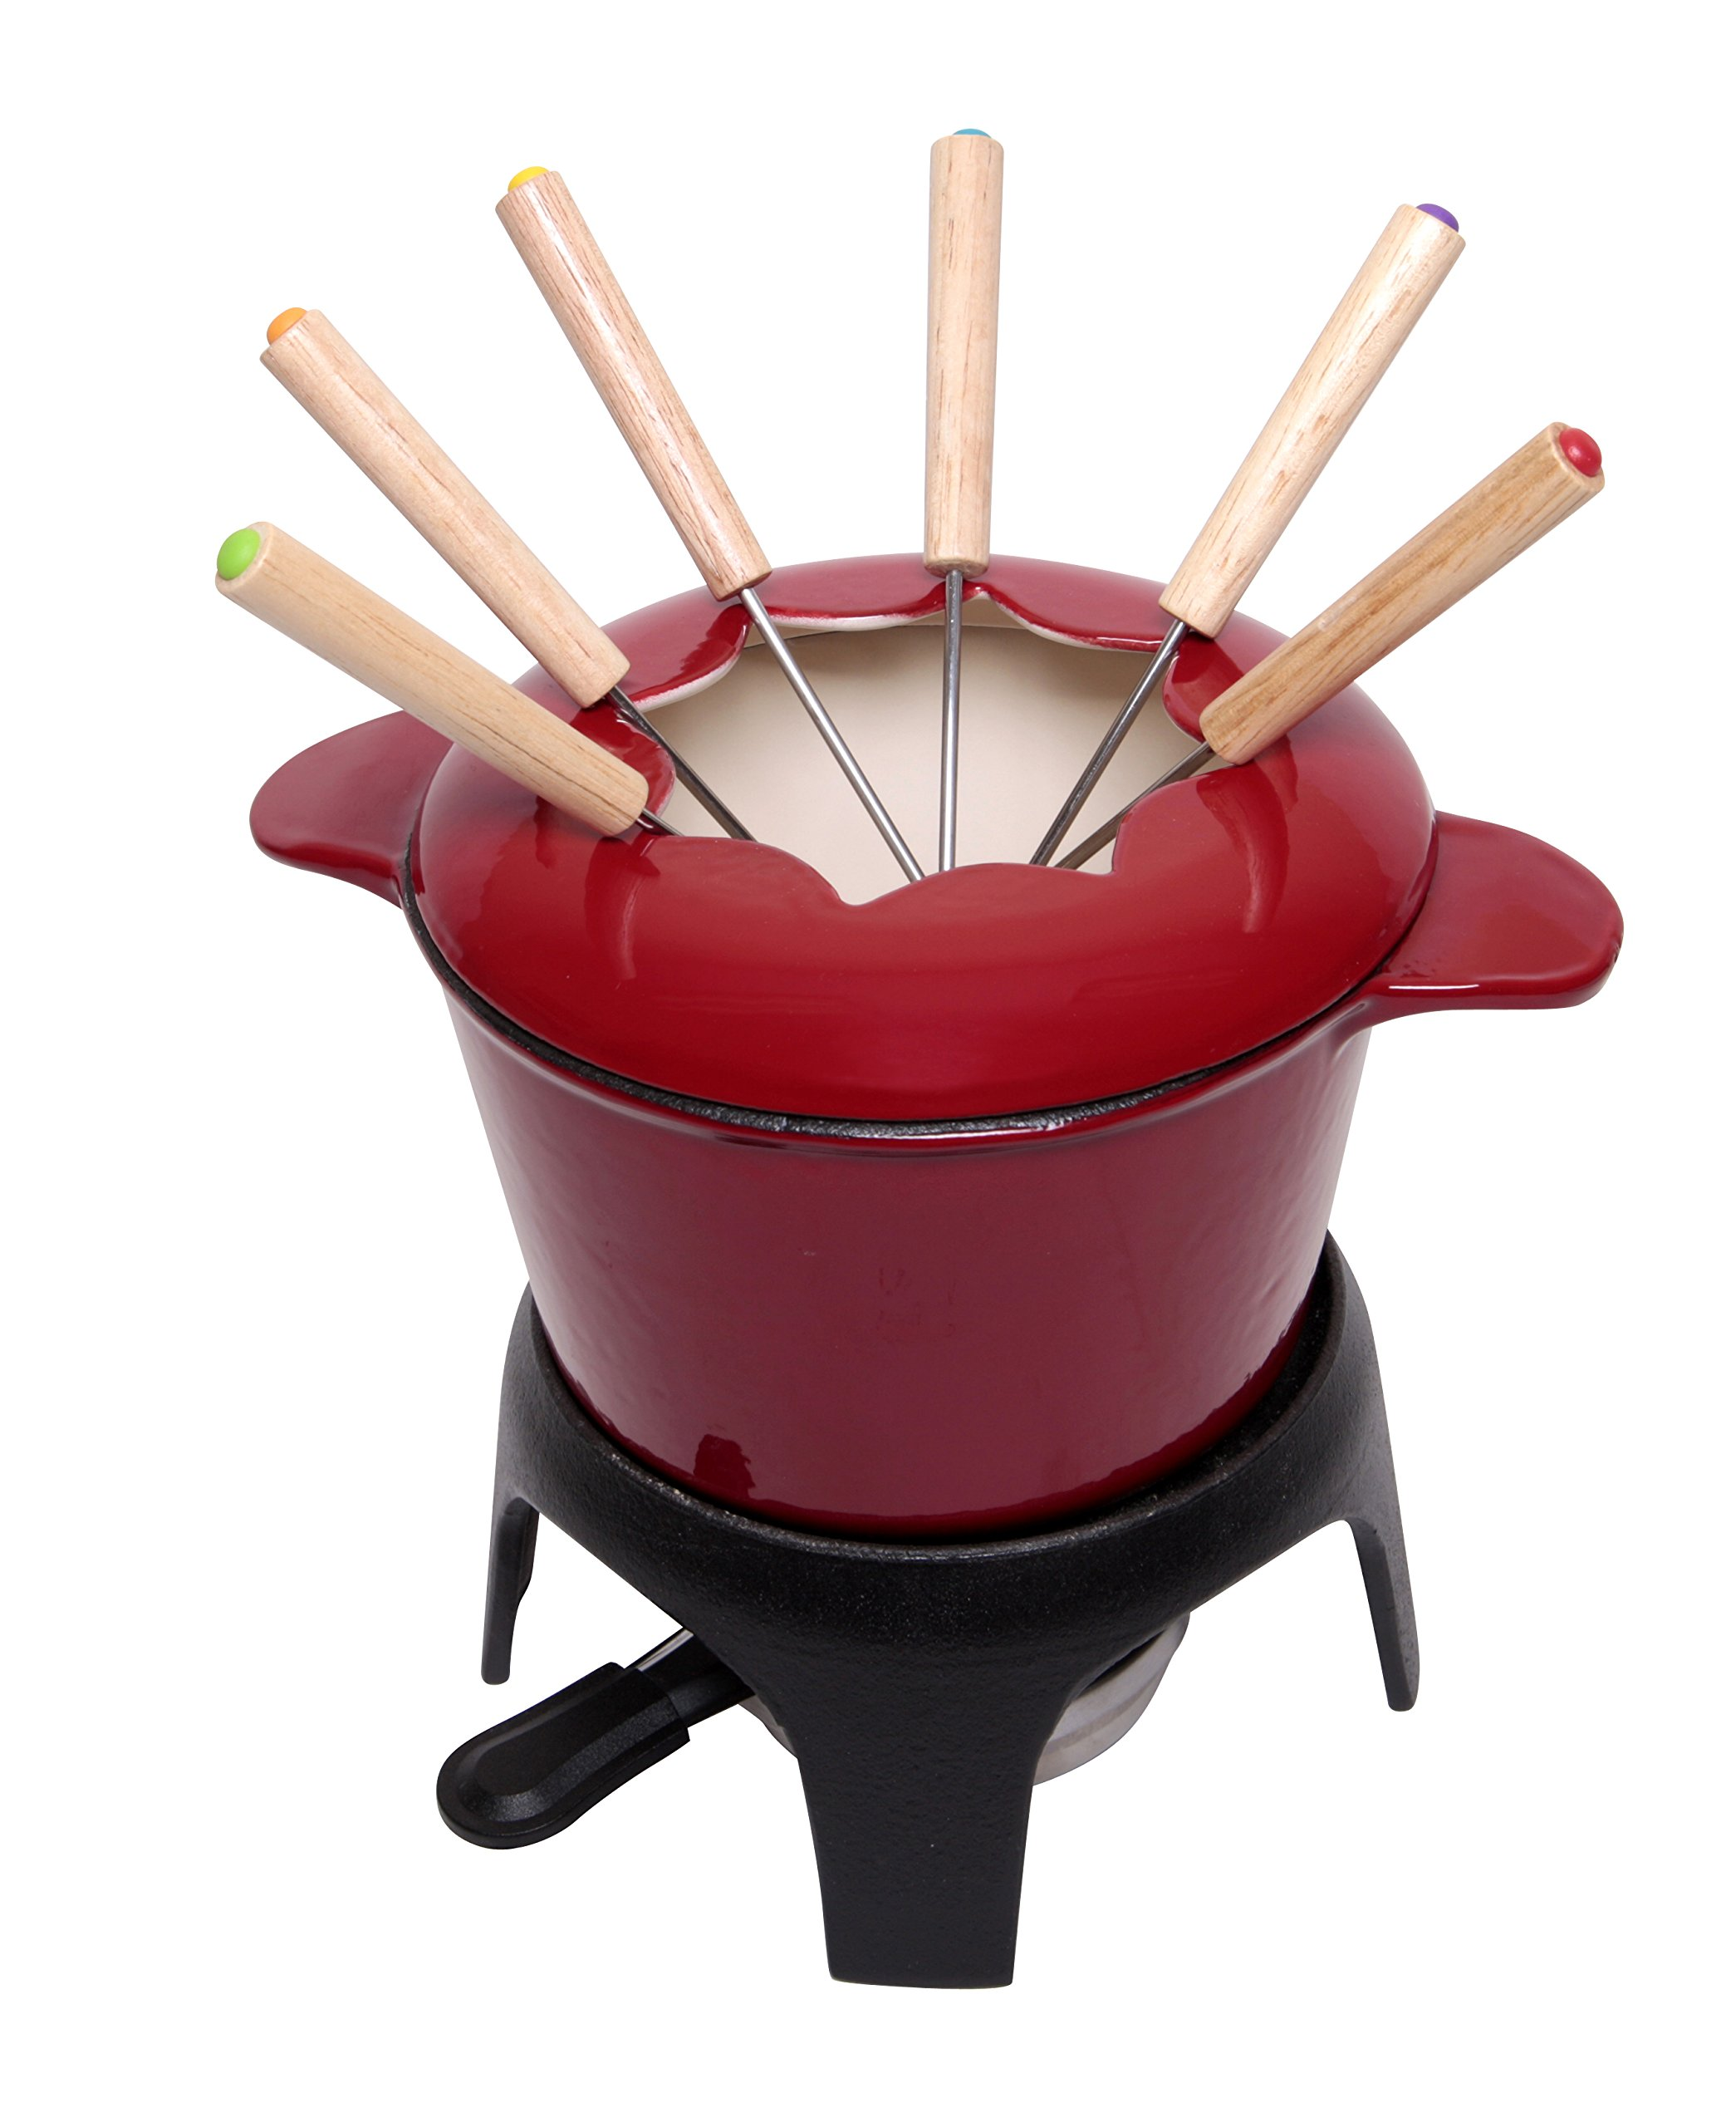 JMilles UH-CI256 1.5QT Cast Iron enamel Fondue Set, Stylish Red Porcelain Enamel